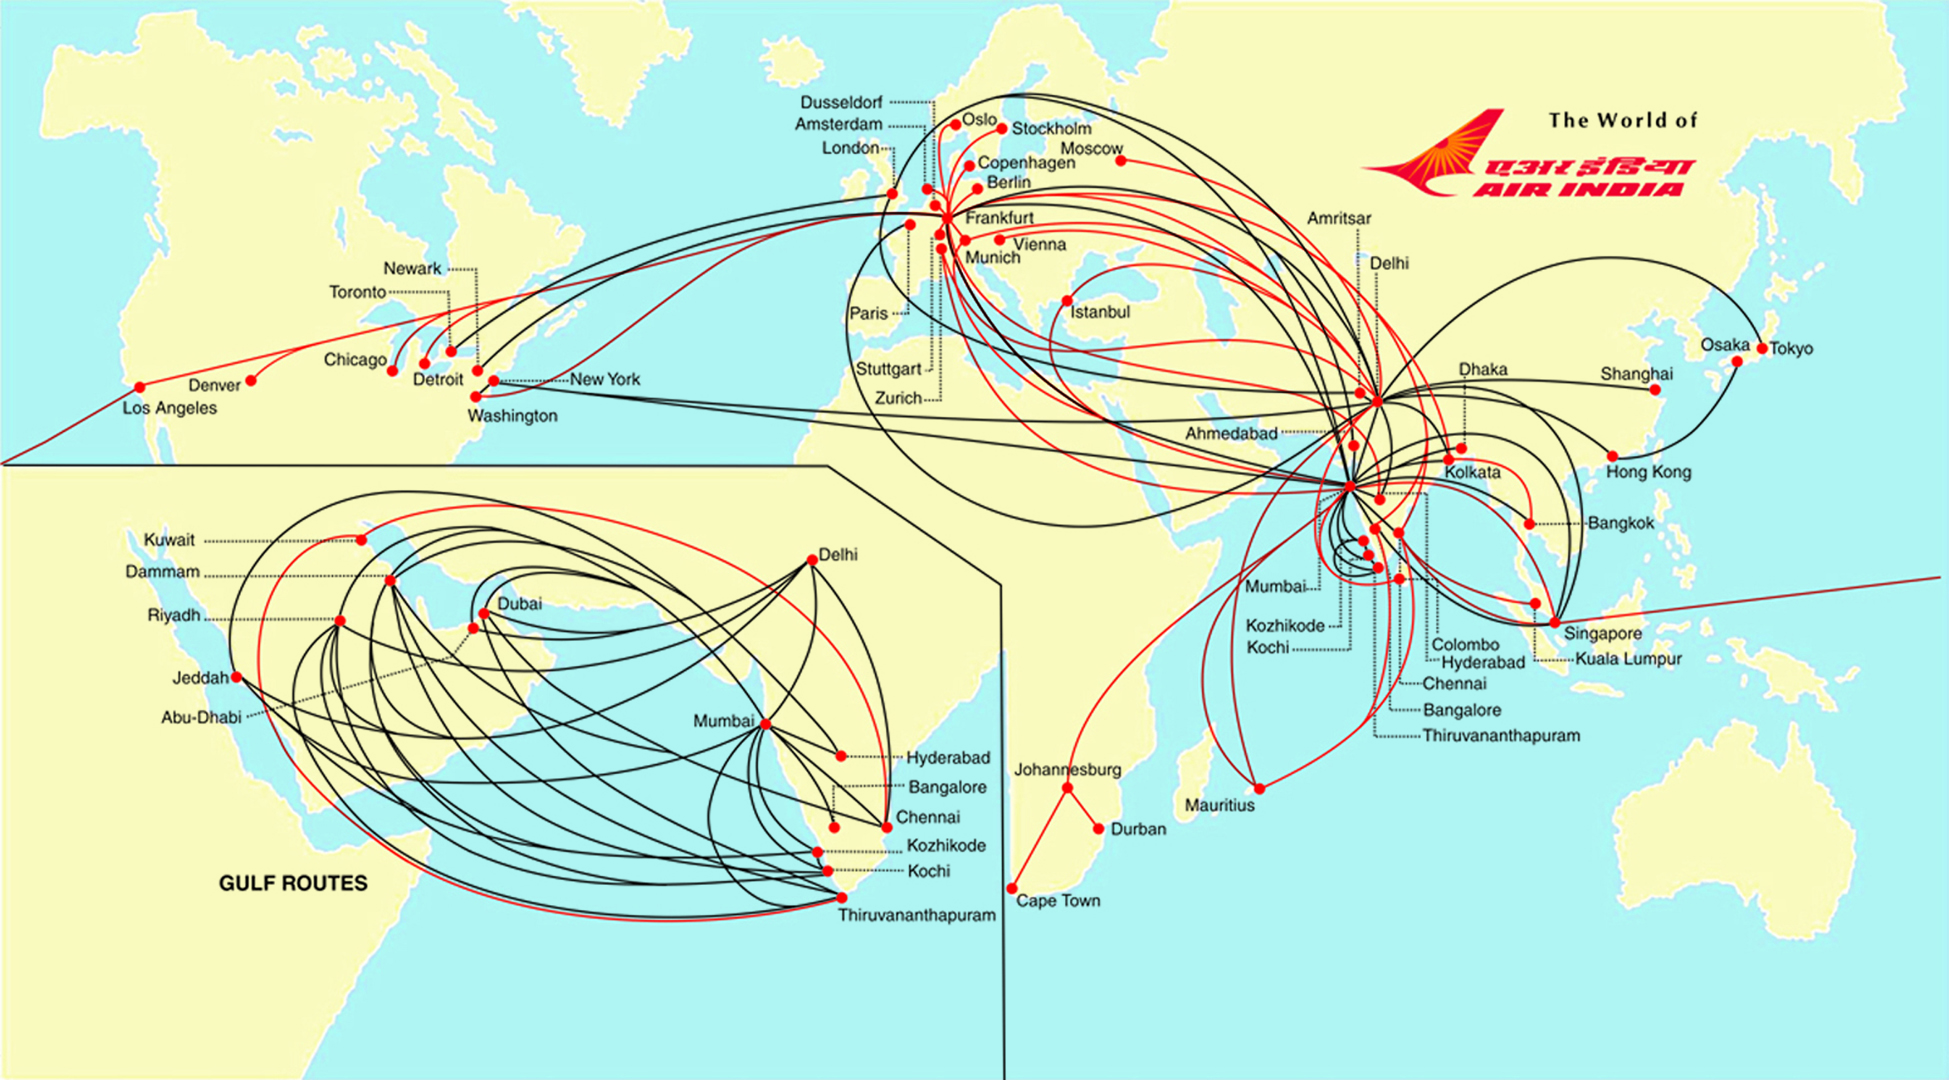 Air India Route Map